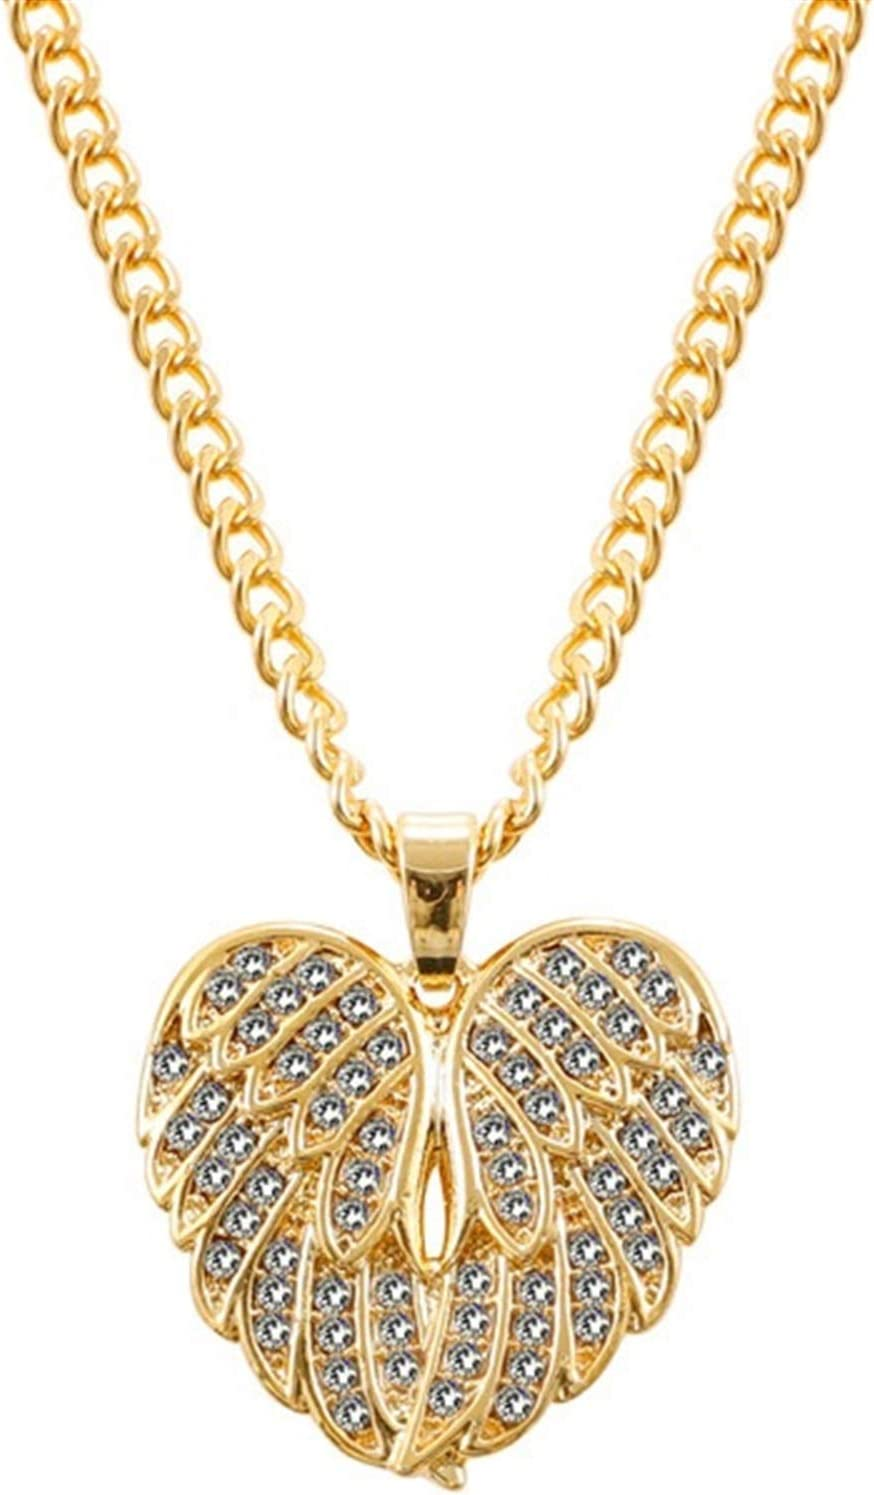 QWERBAM Stainless Steel Heart Shape Zircon Necklace for Women Gift Charm Chain Love Necklace Feather Necklace Chokers Collar (Metal Color : 2)